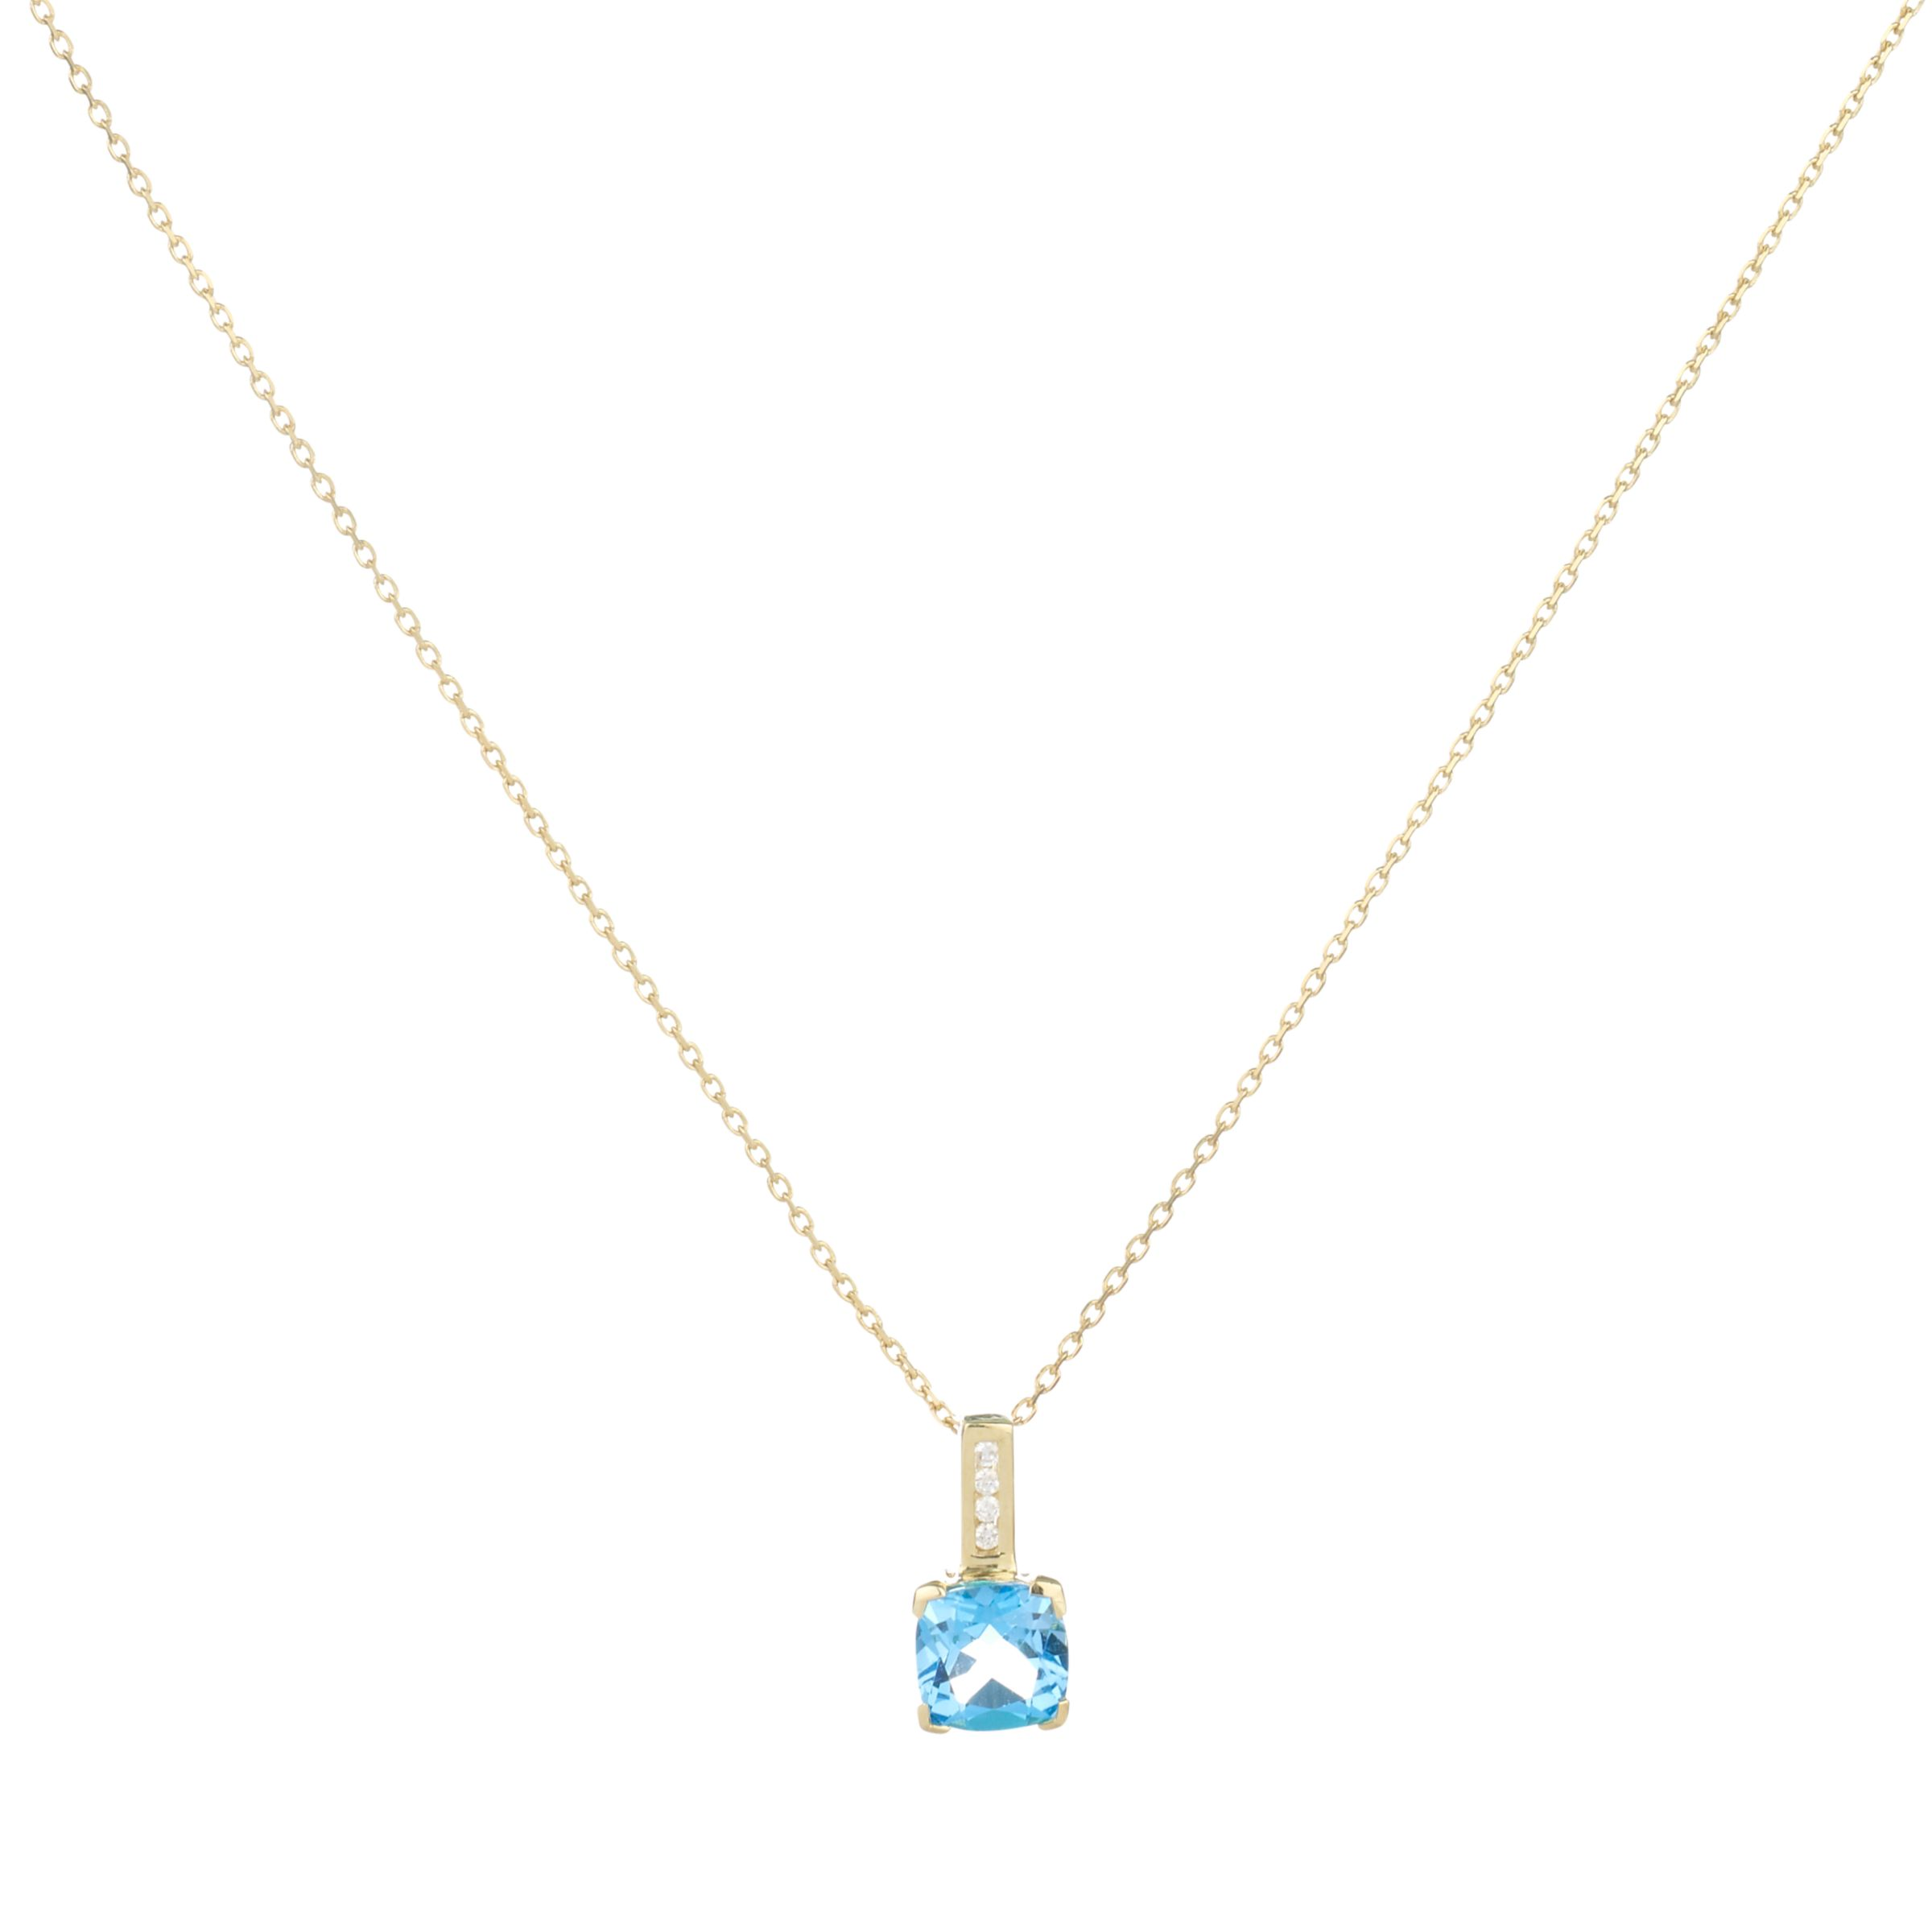 9ct Yellow Gold Cushion Cut Blue Topaz Pendant Necklace